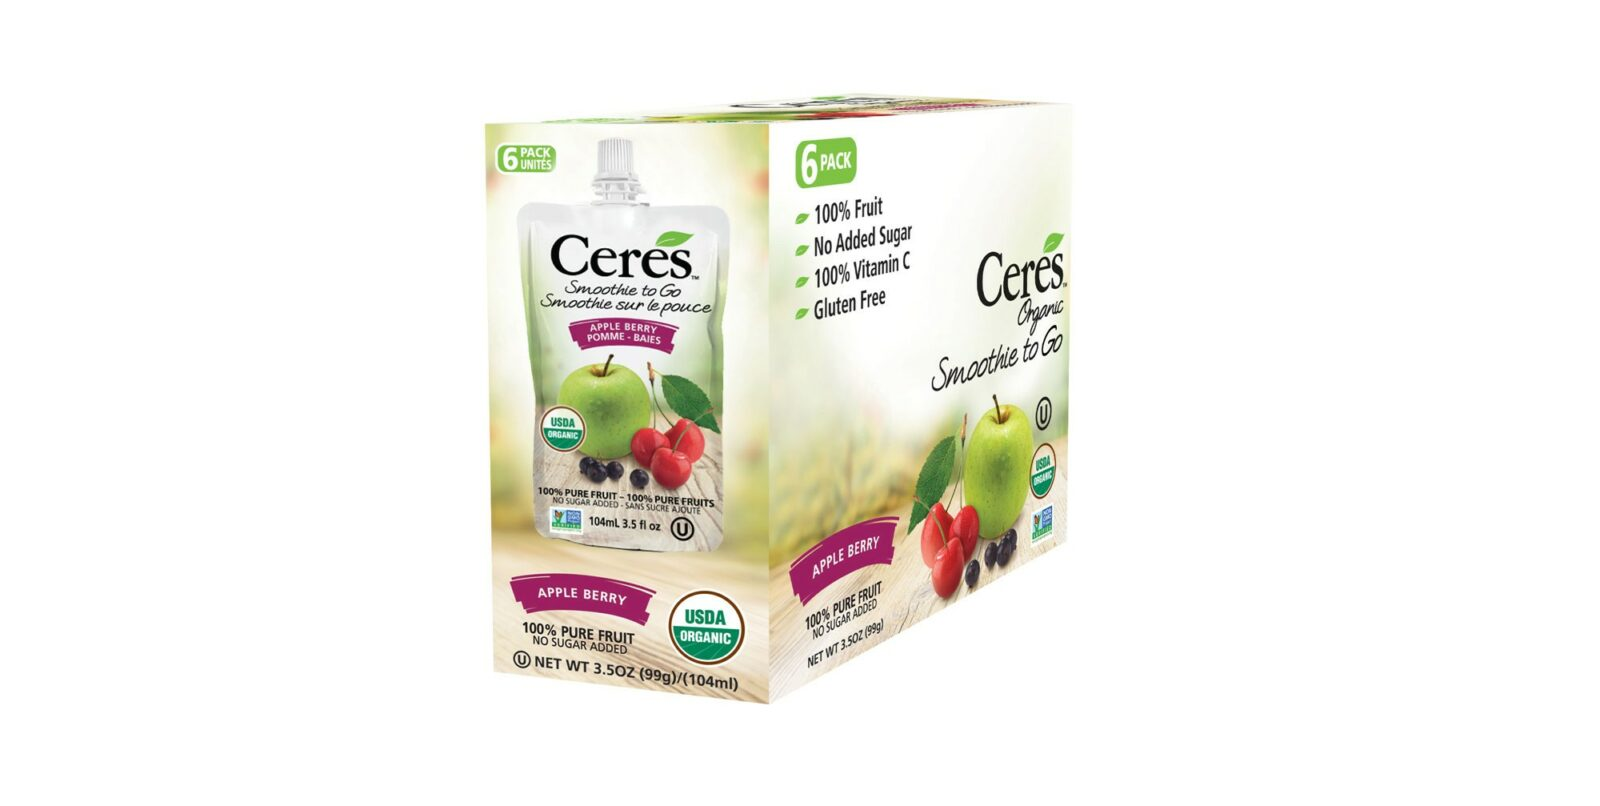 Ceres Fruit Juices: Orchard-to-Table Natural Goodness